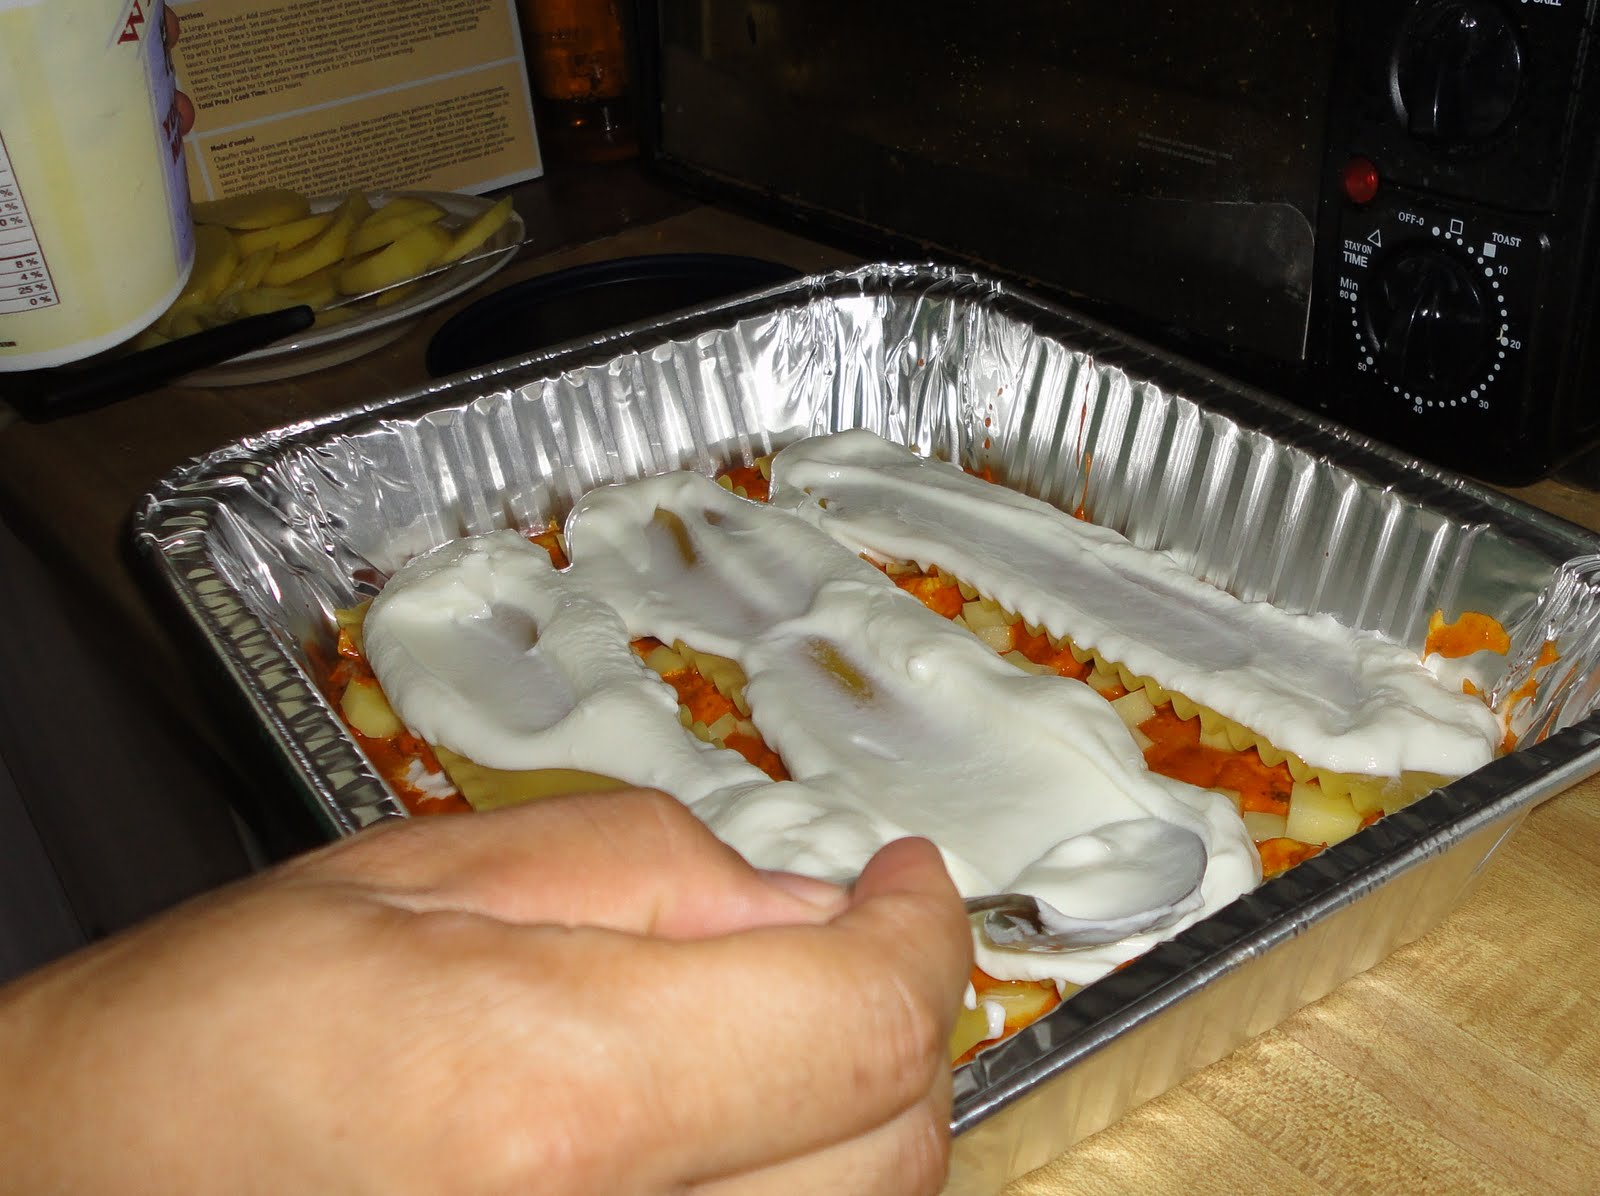 The Late Night Chefs Curry Lasagna